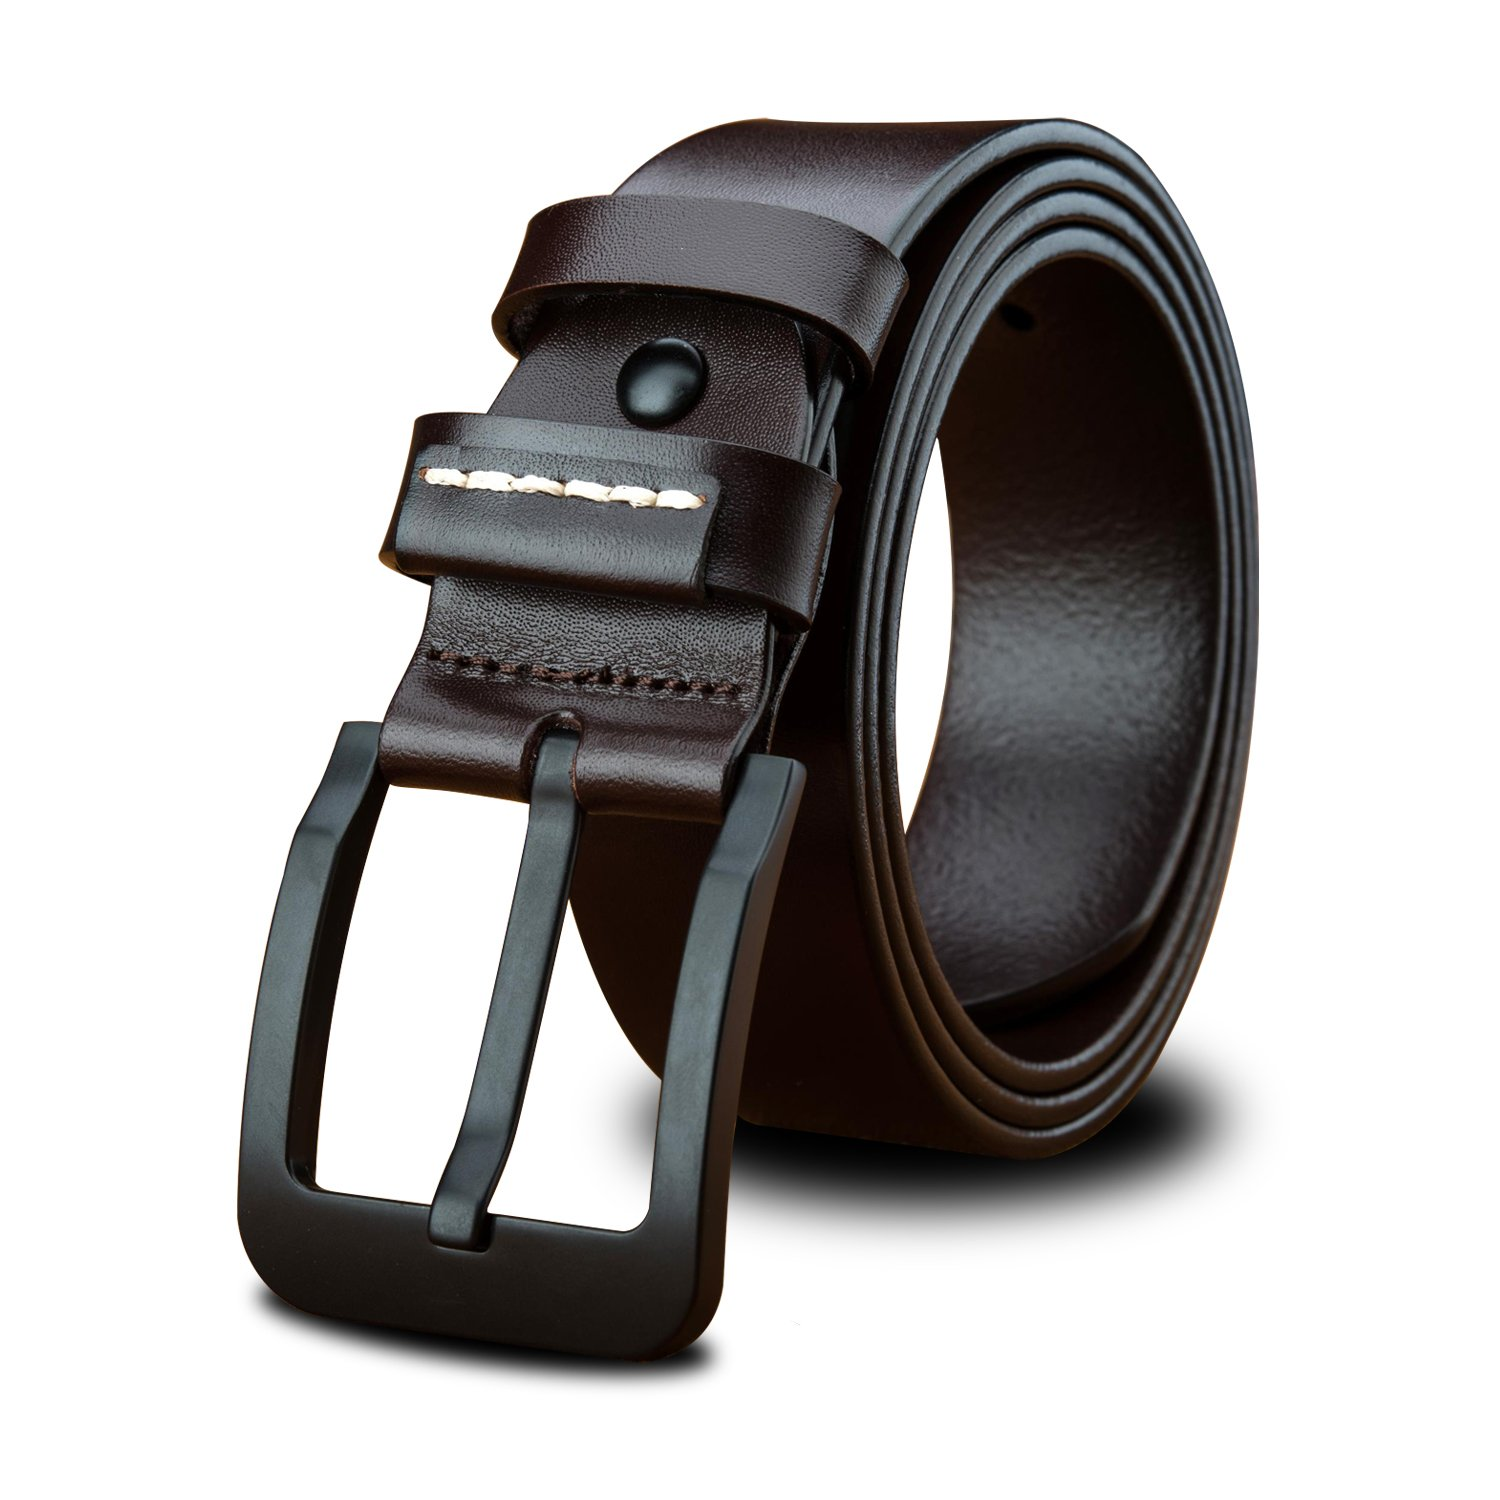 LUCIANO Casual Italy Cowhide Genuine Leather Black & Brown Belt Men's Dress Belts BR-48